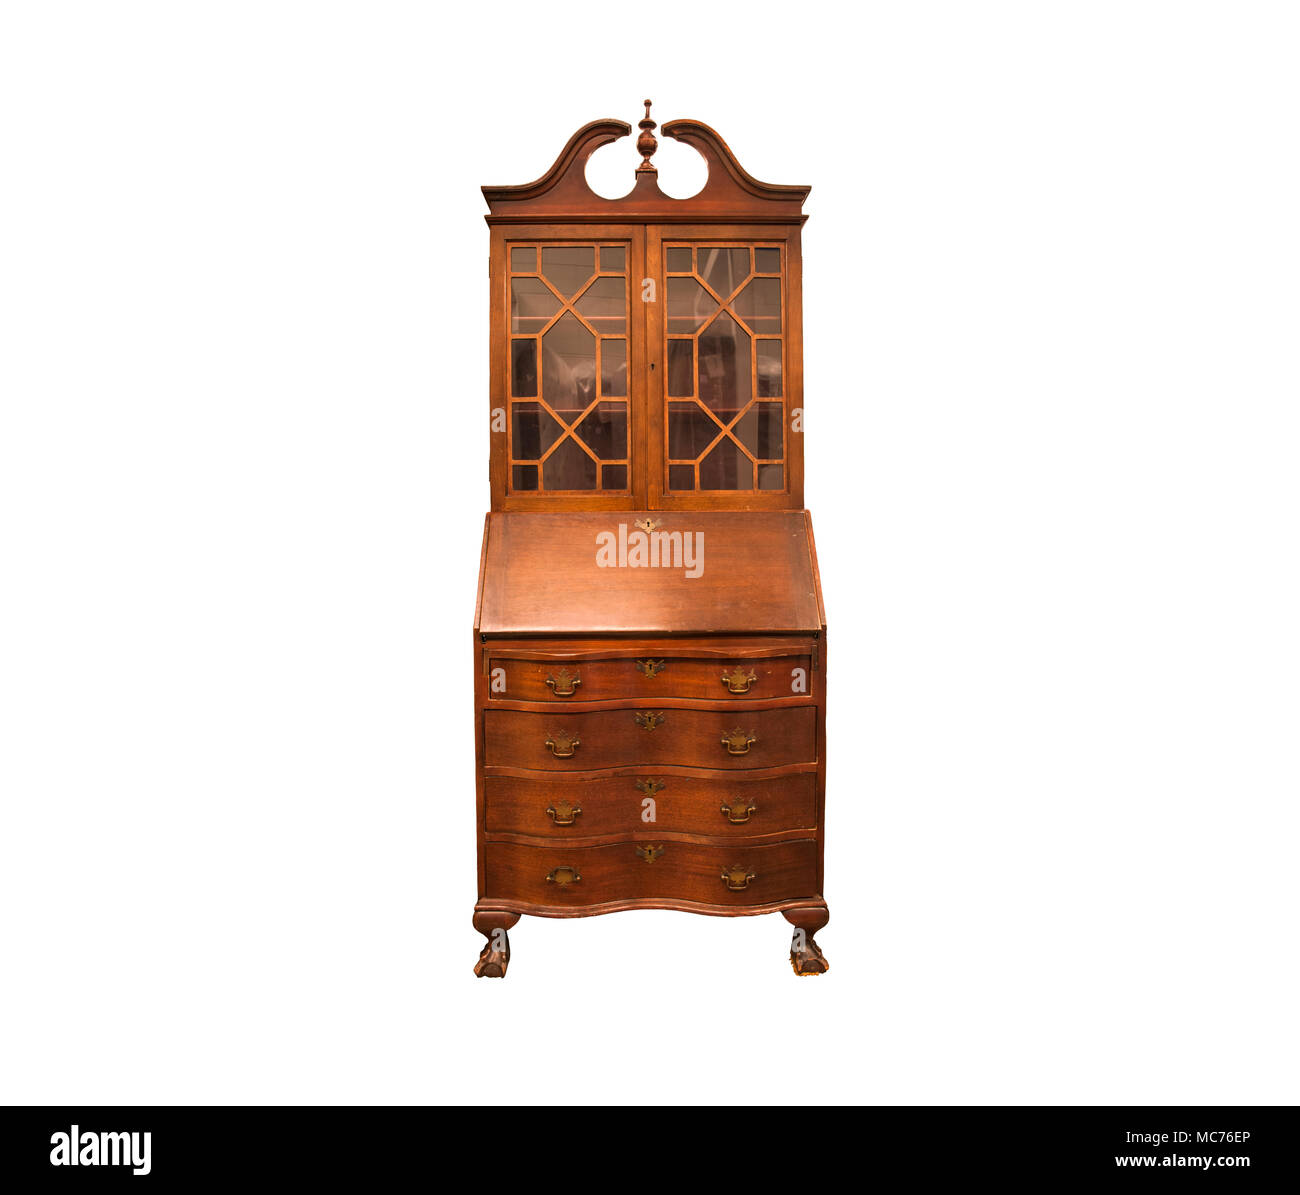 Meubles Anciens Encheres French Antique Furniture Photos French Antique Furniture Images